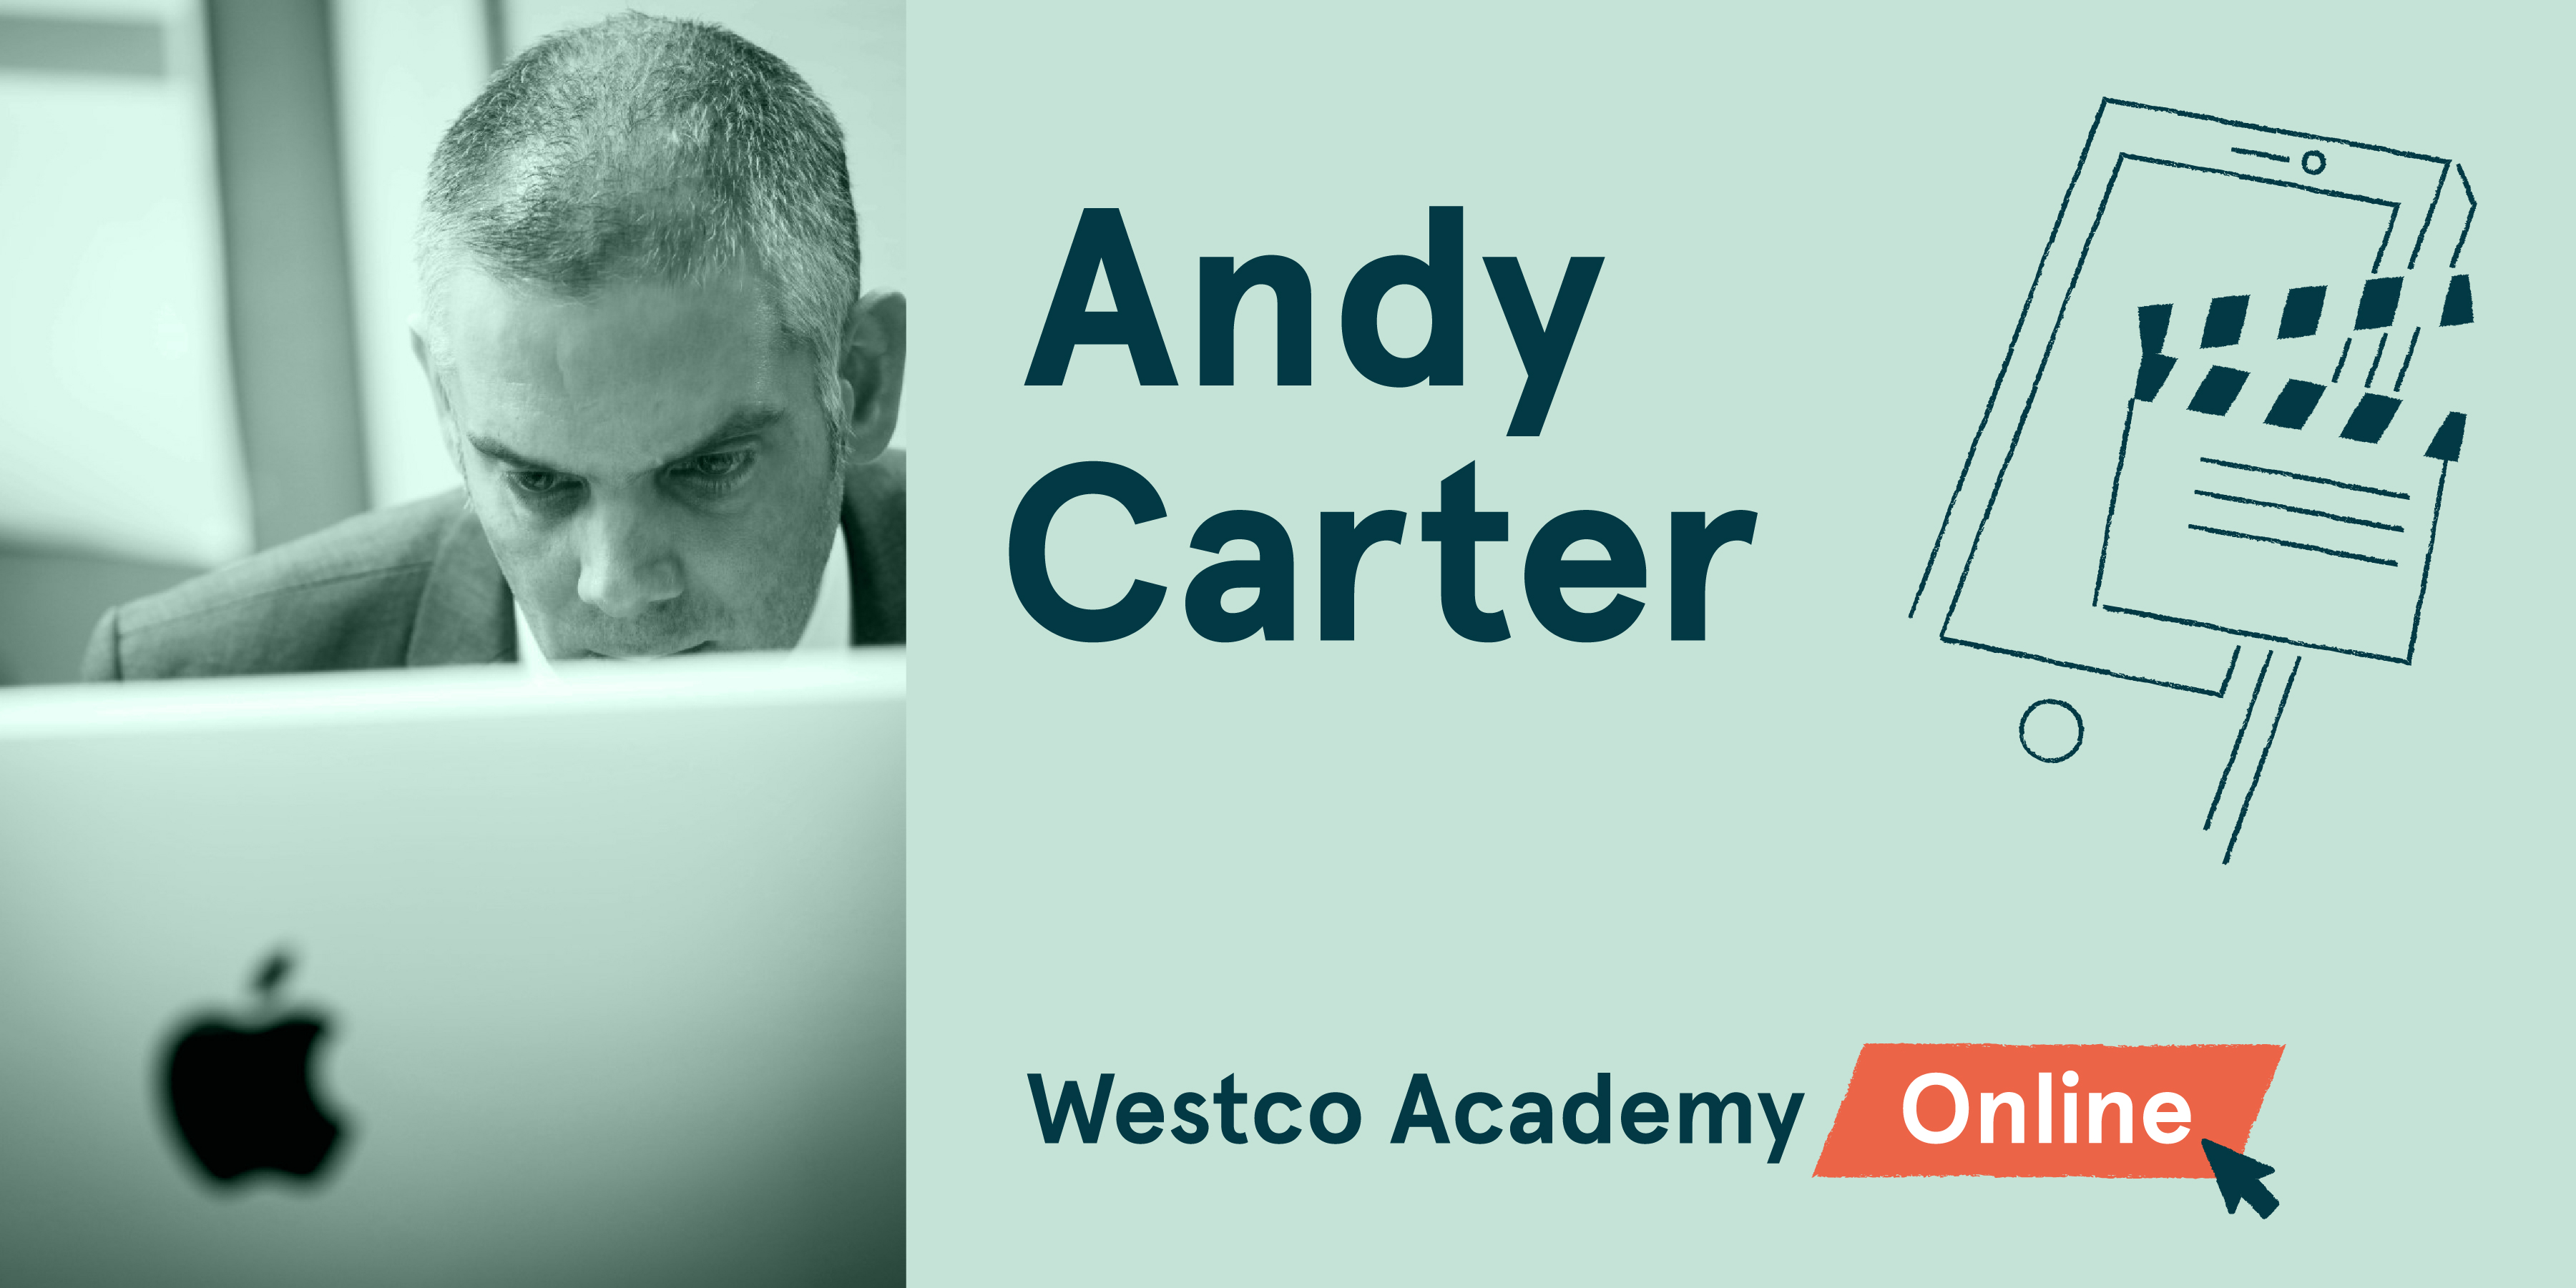 498_3 - WES_Westco_Academy_video_with_smartphone_event_page_B